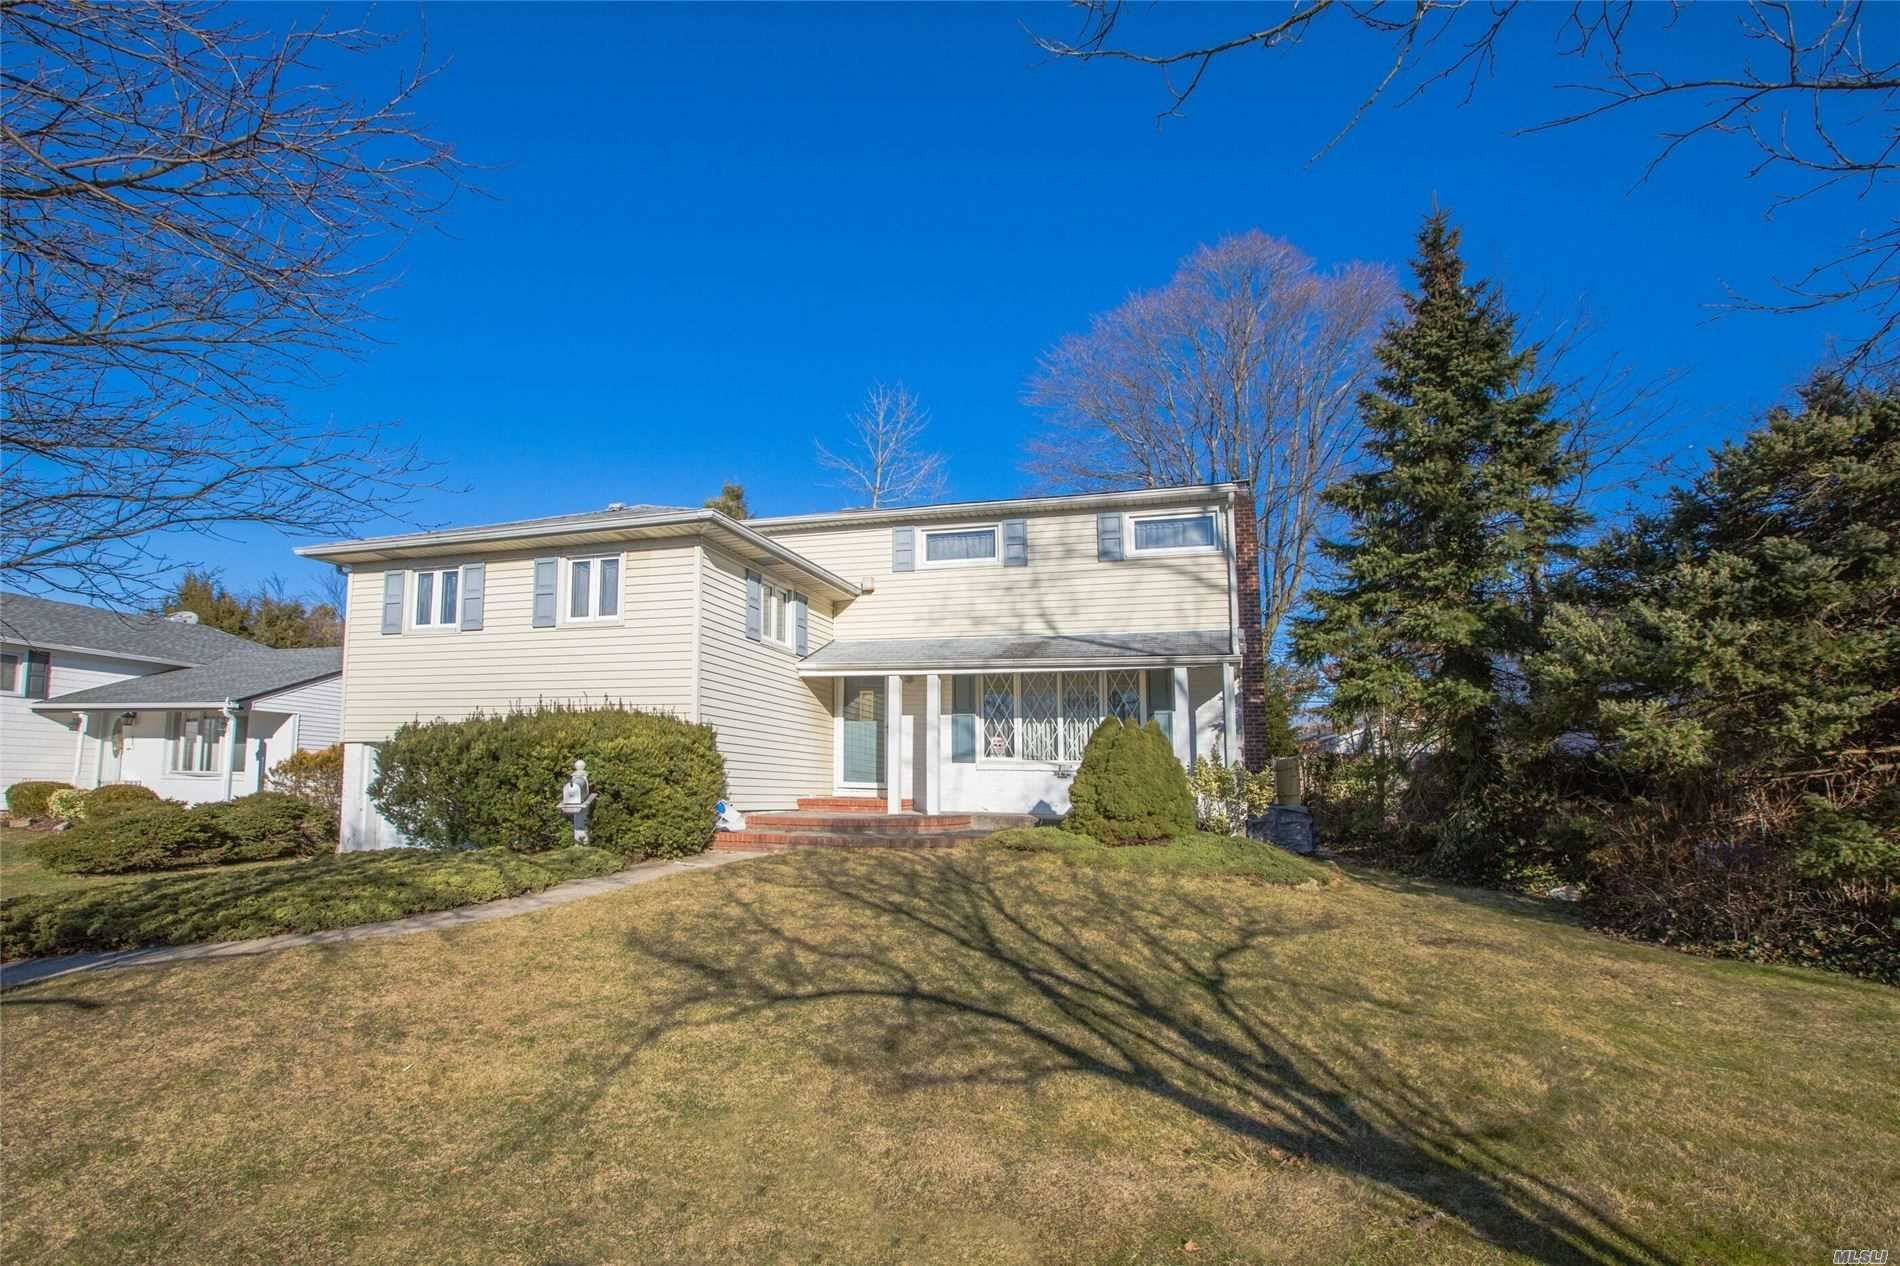 87 Willets Drive, Syosset, NY 11791 - MLS#: 3227240